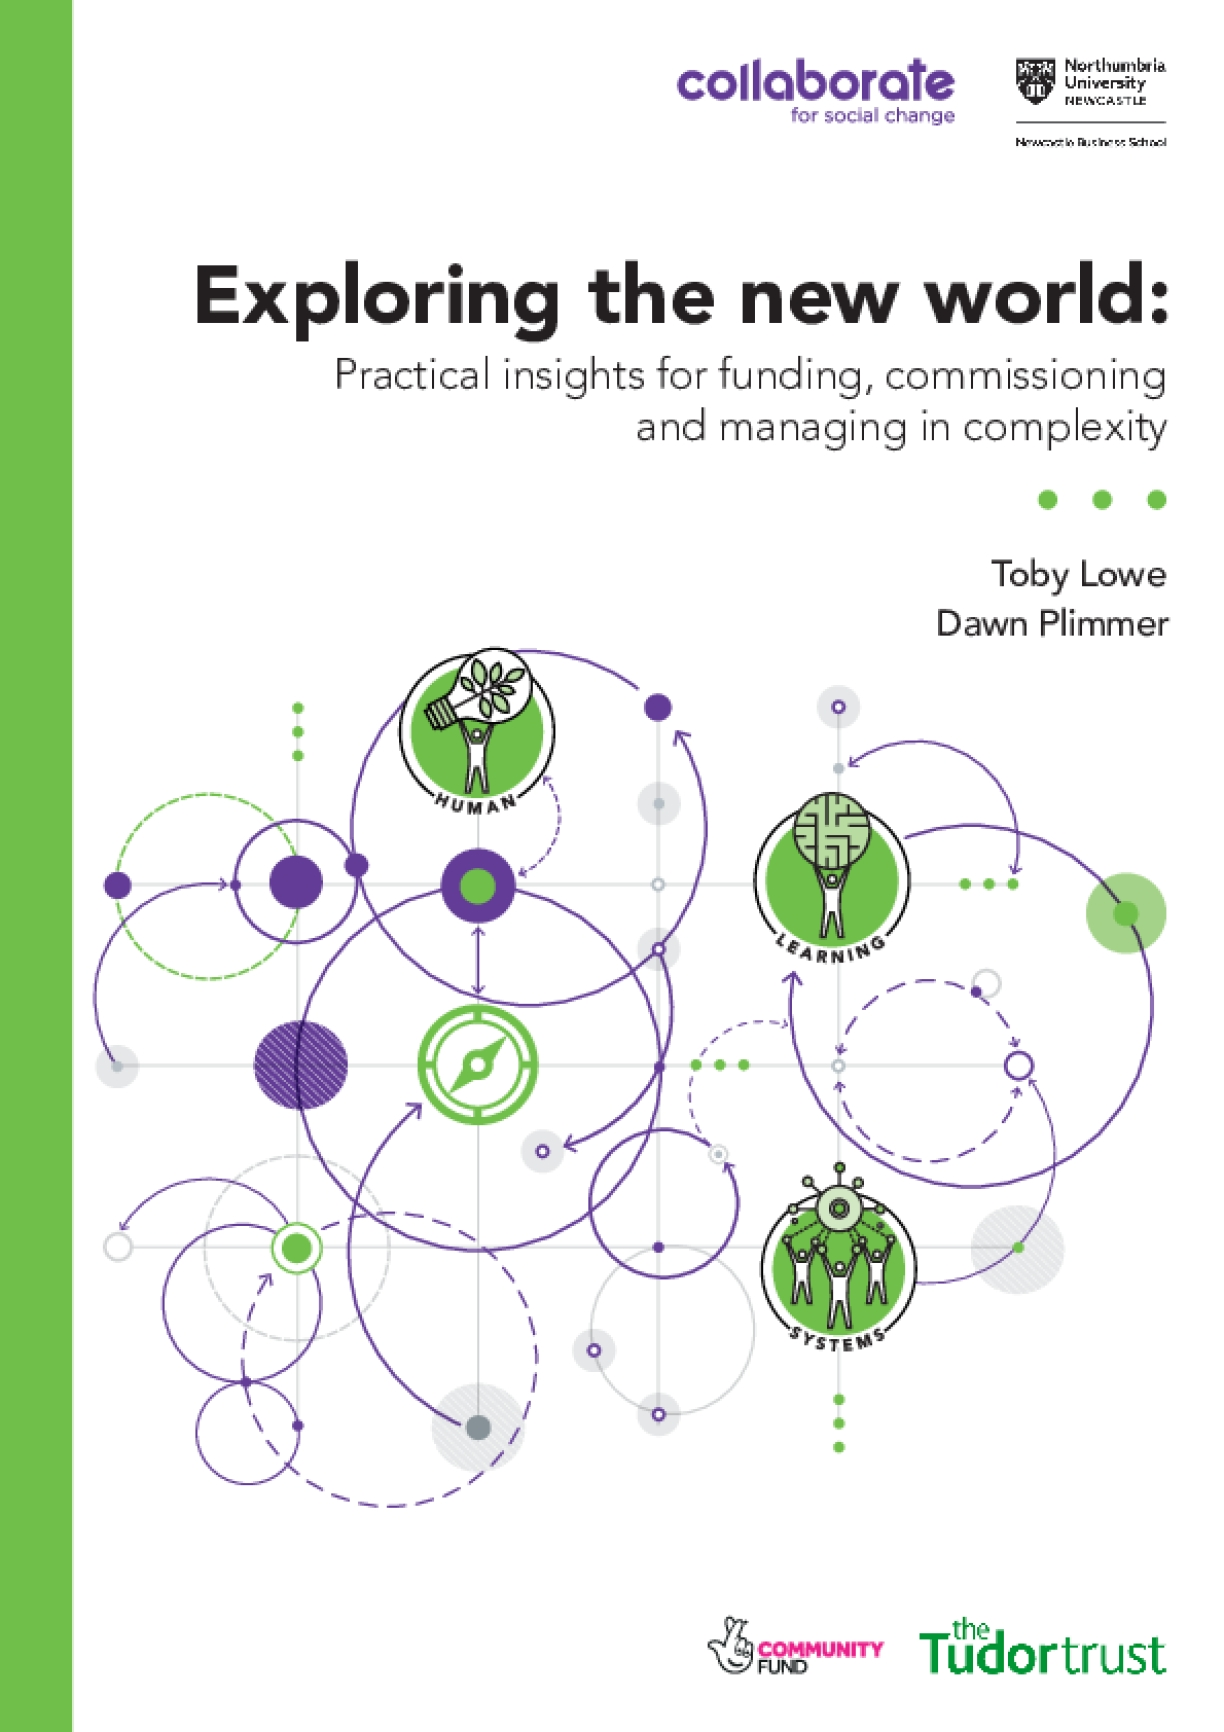 Exploring the New World: Practical Insights for Funding, Commissioning and Managing in Complexity